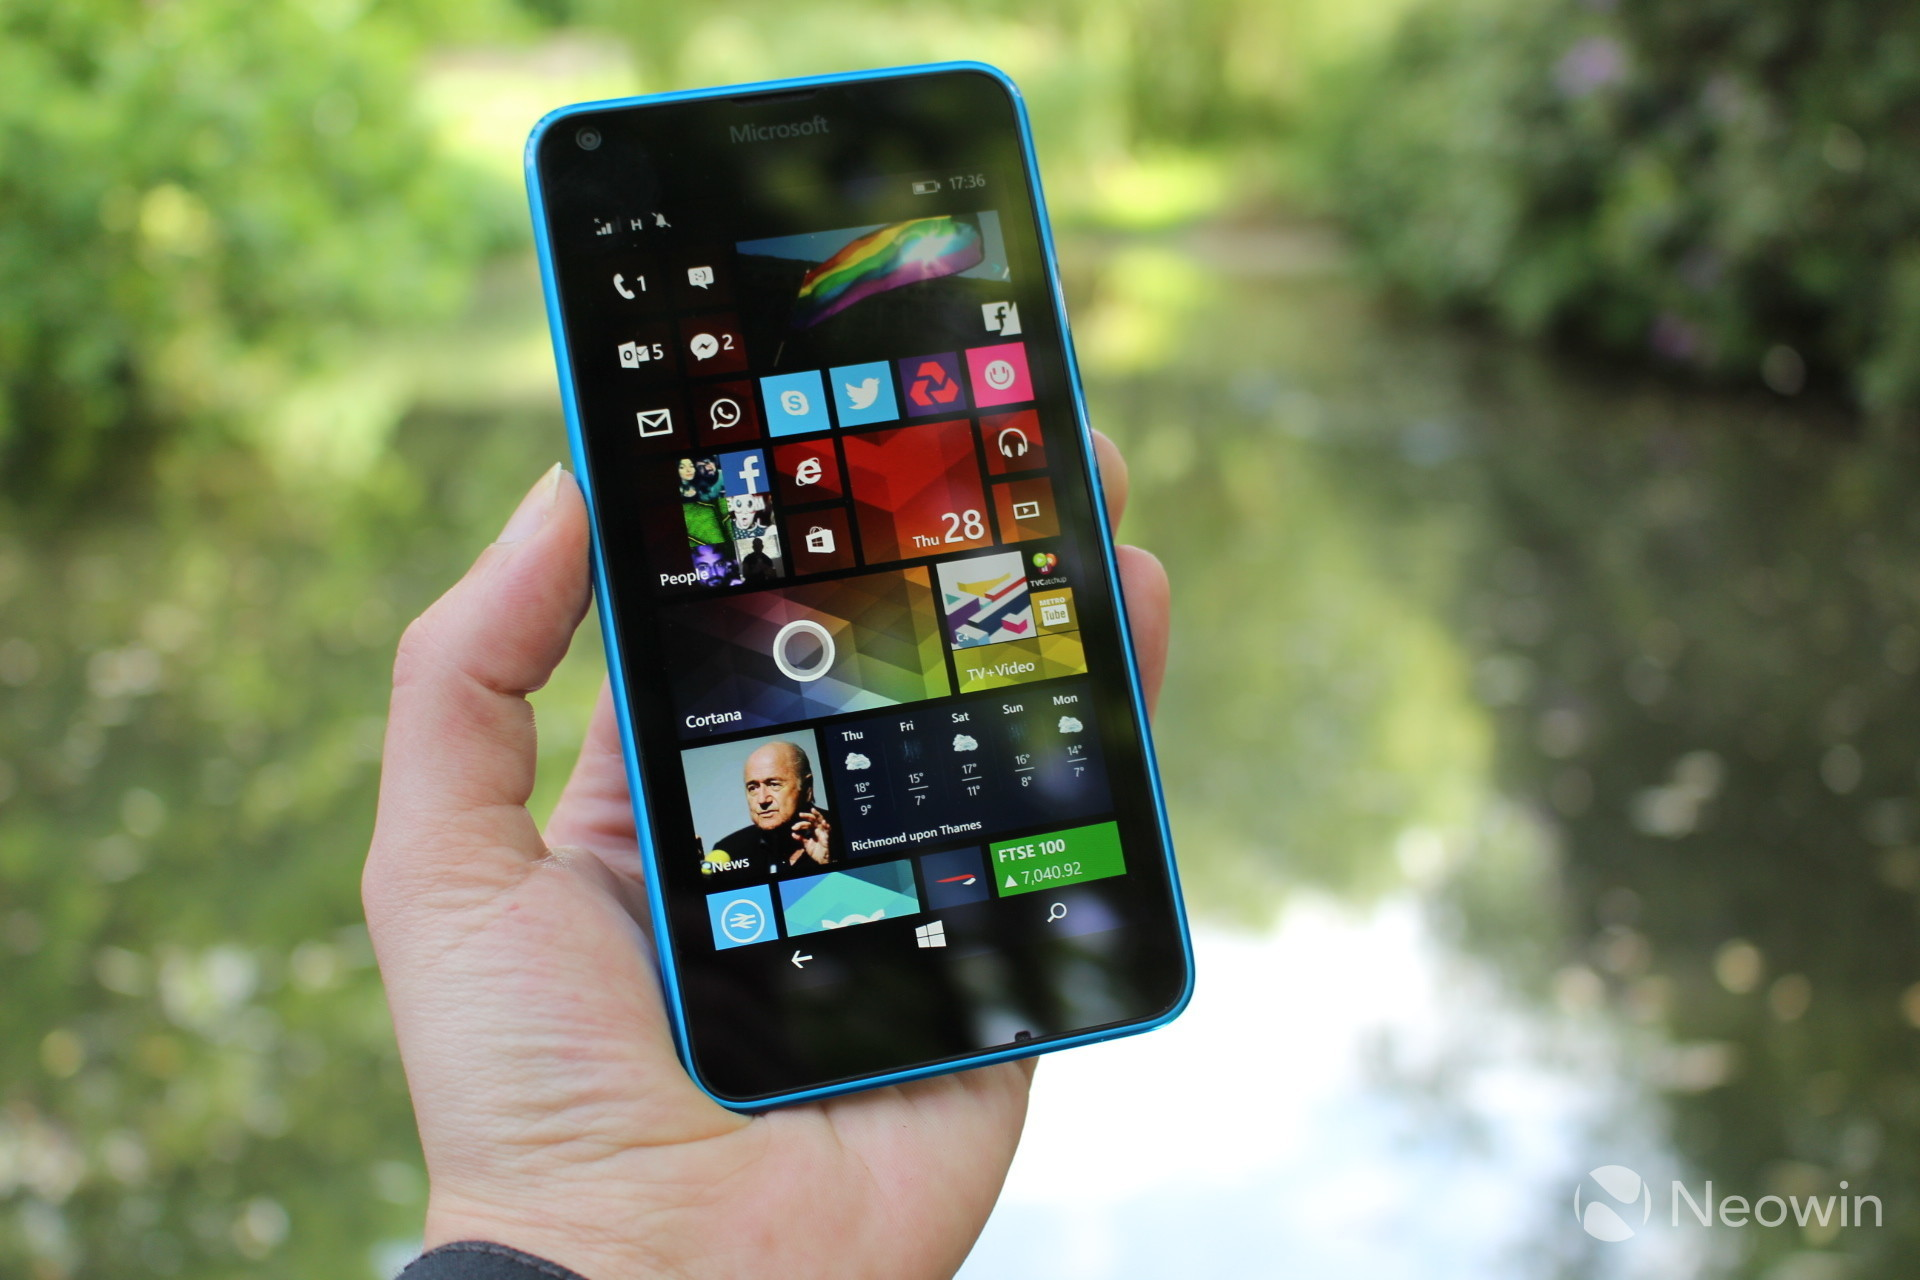 Lumia 640 windows 10 mobile experience on the web windows central - Over The Last Few Weeks I Ve Been Testing Both The Lumia 640 And 640 Xl And Earlier This Month We Published Our Review Of The Larger Device